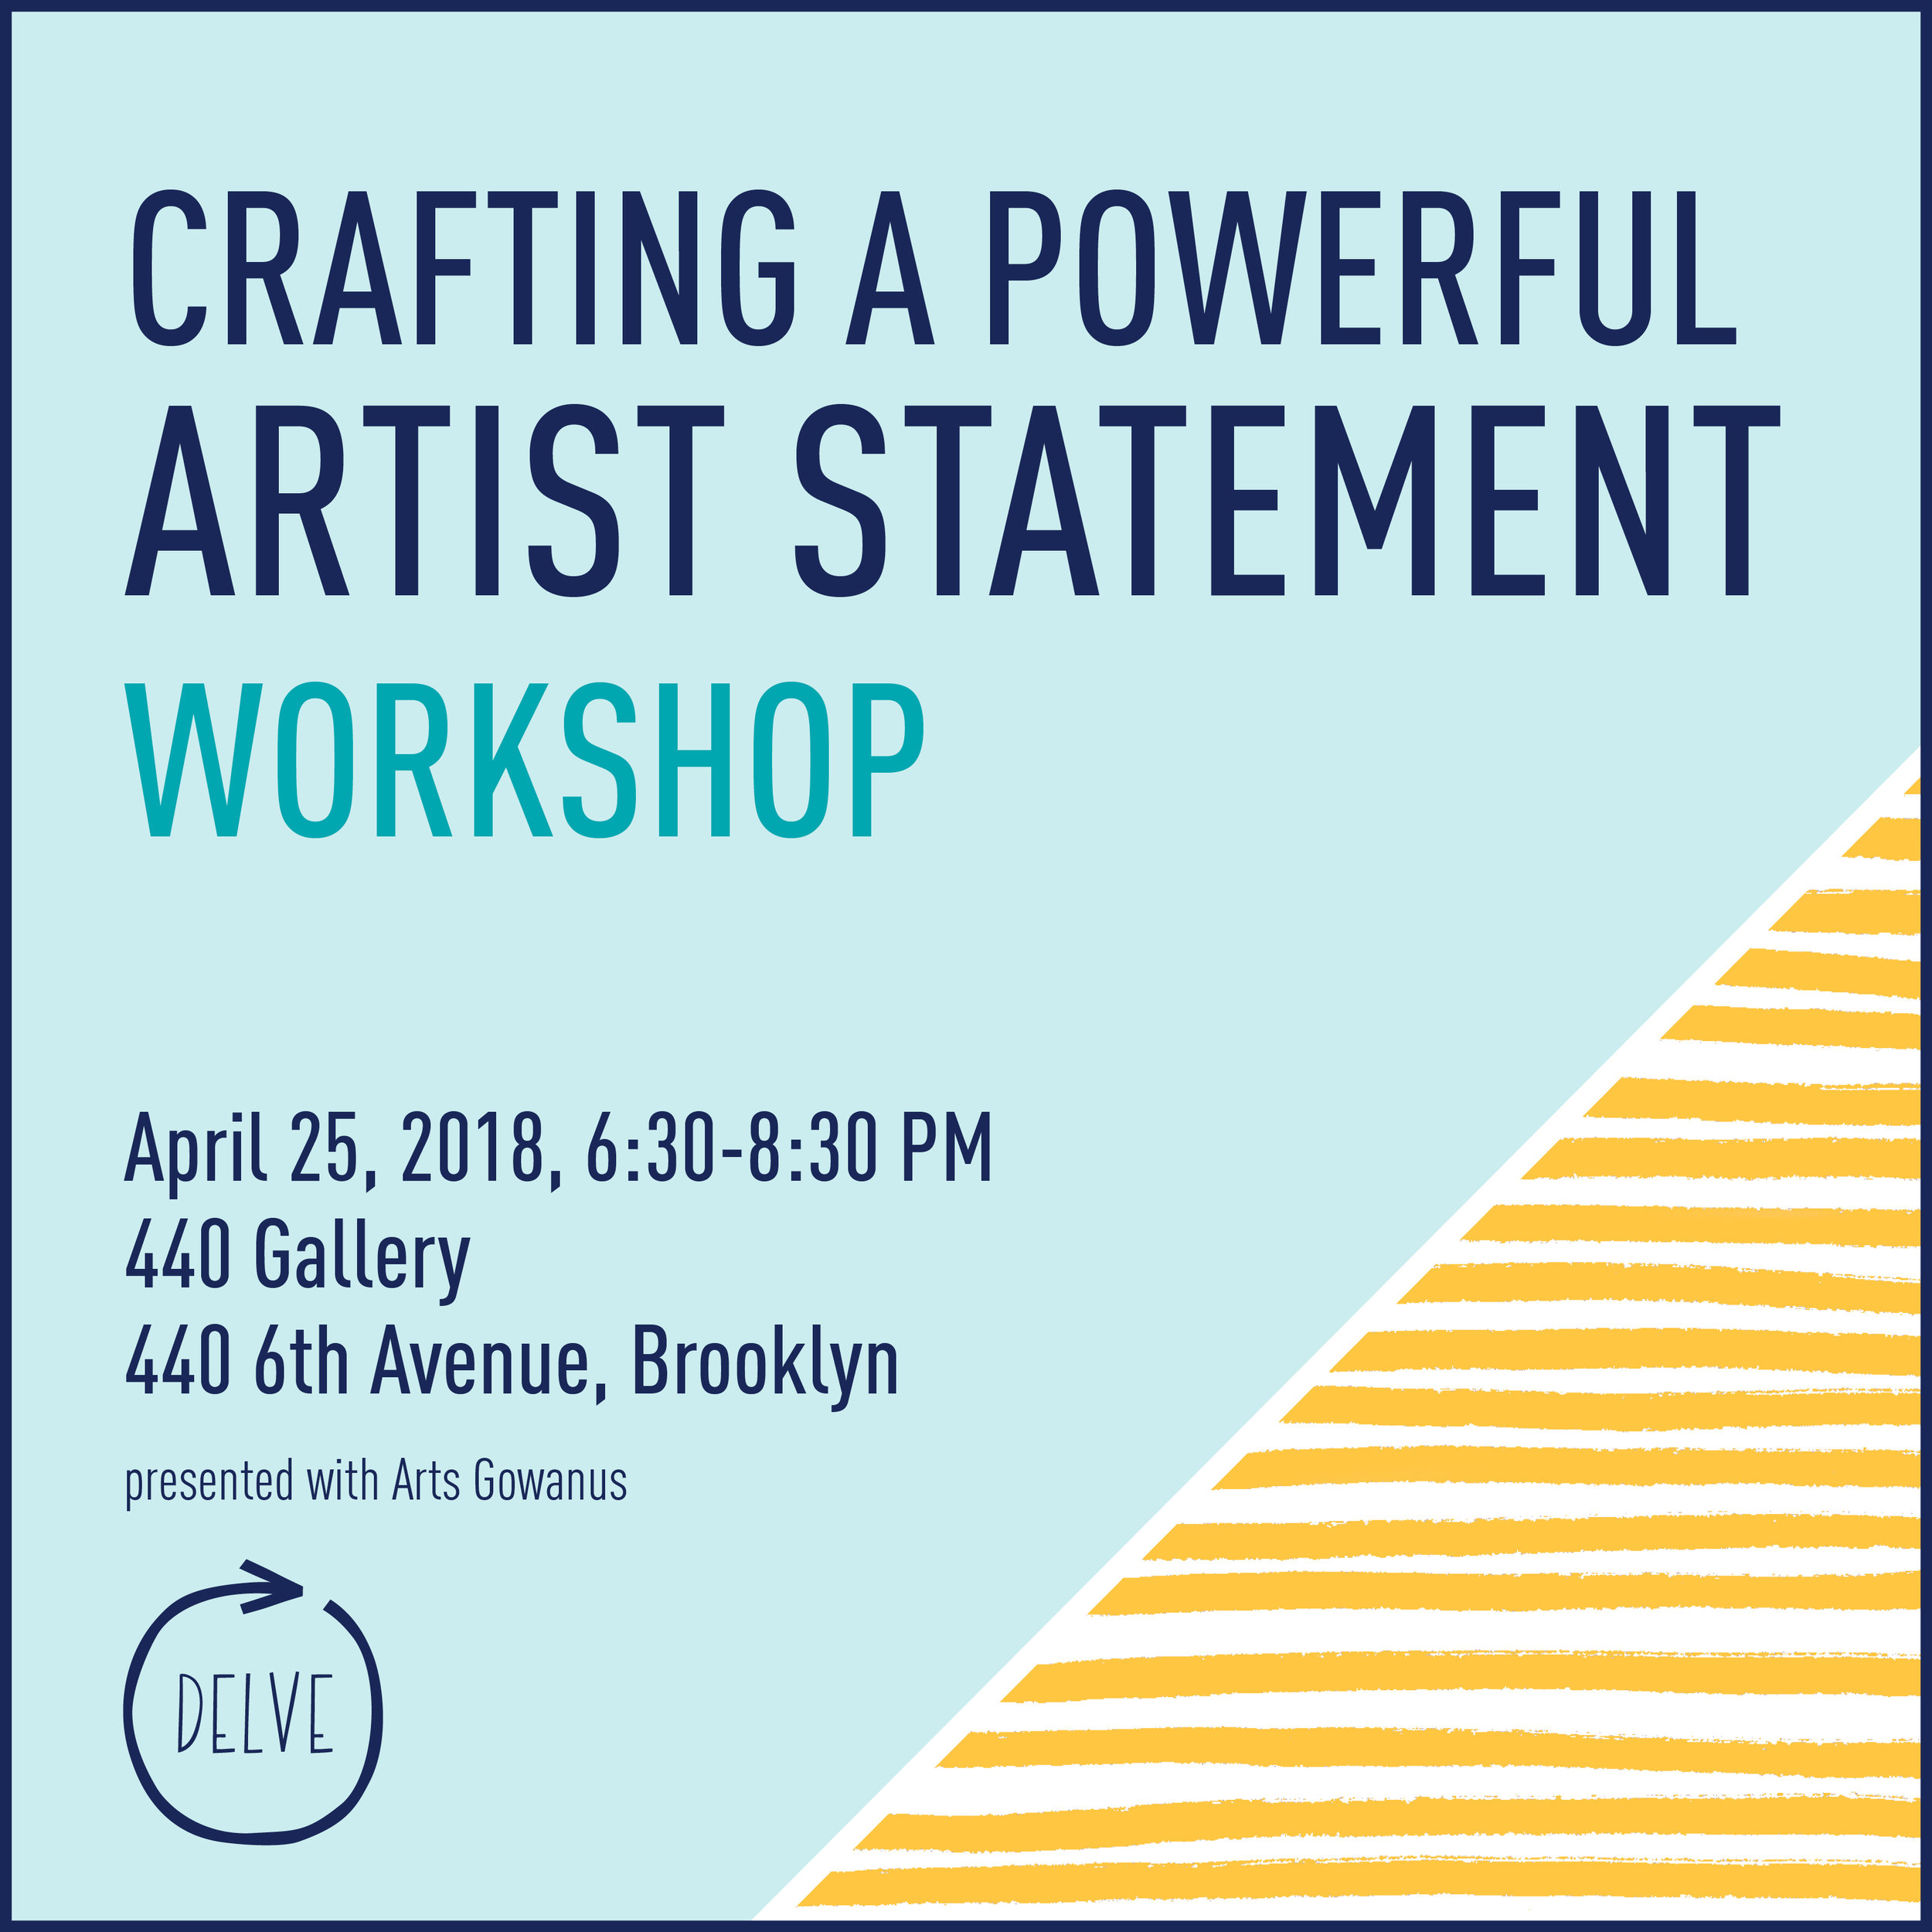 DELVEartiststatementworkshop4-25-18.jpg